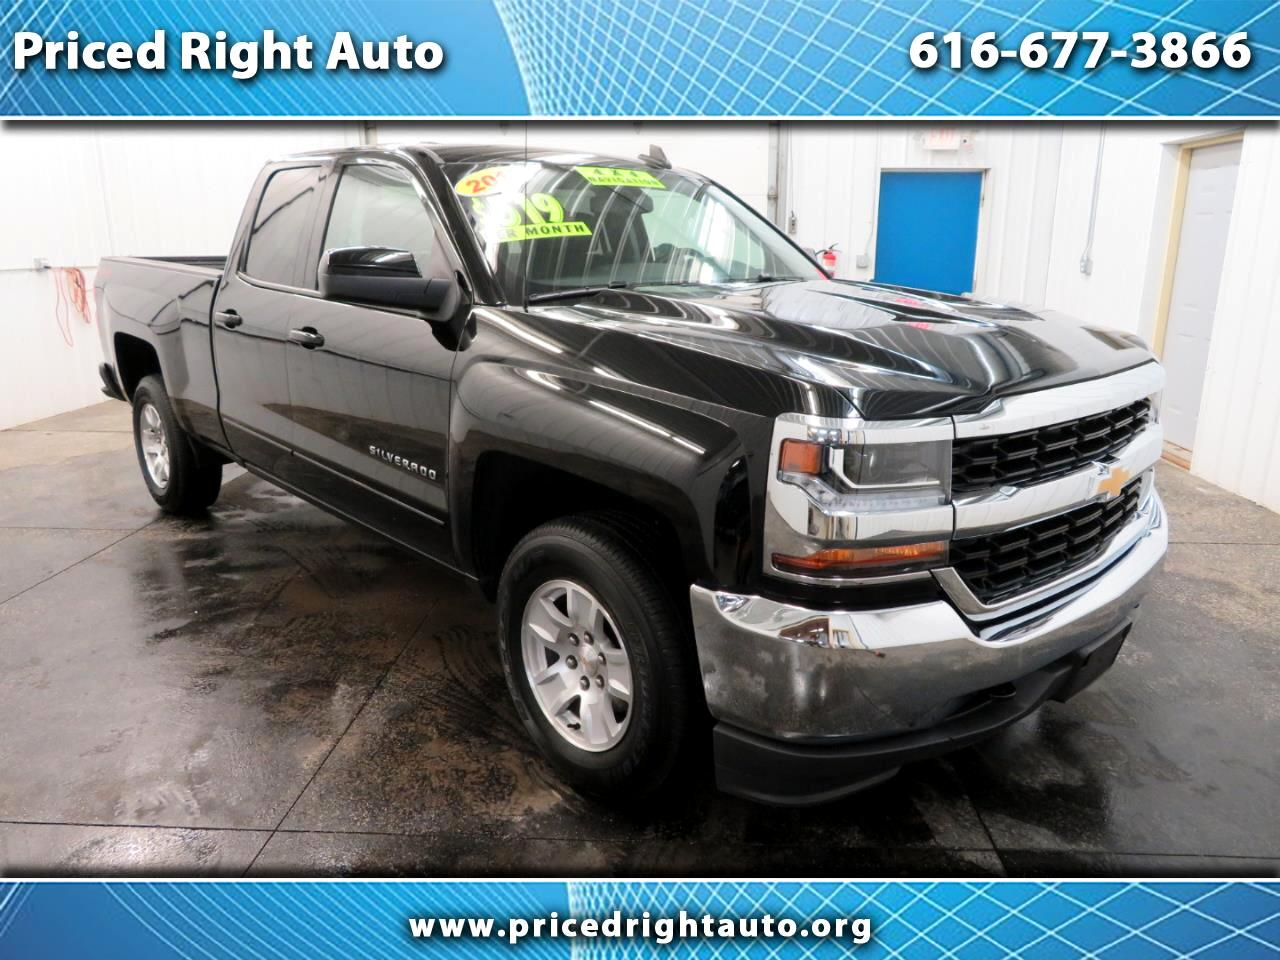 Priced Right Auto >> Used Cars For Sale Marne Mi 49435 Priced Right Auto